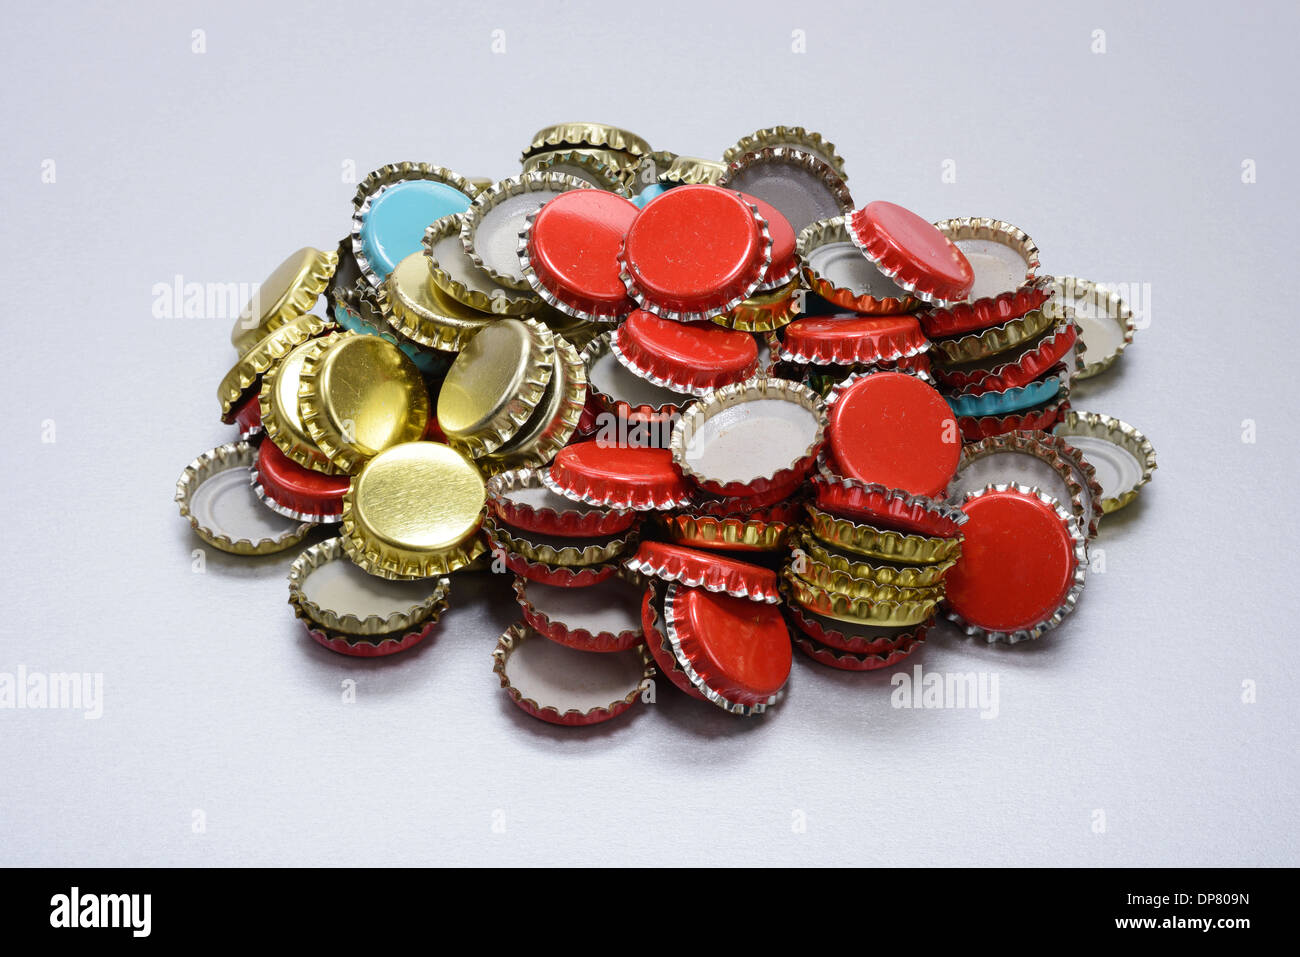 Pile of crown cork bottle caps - Stock Image